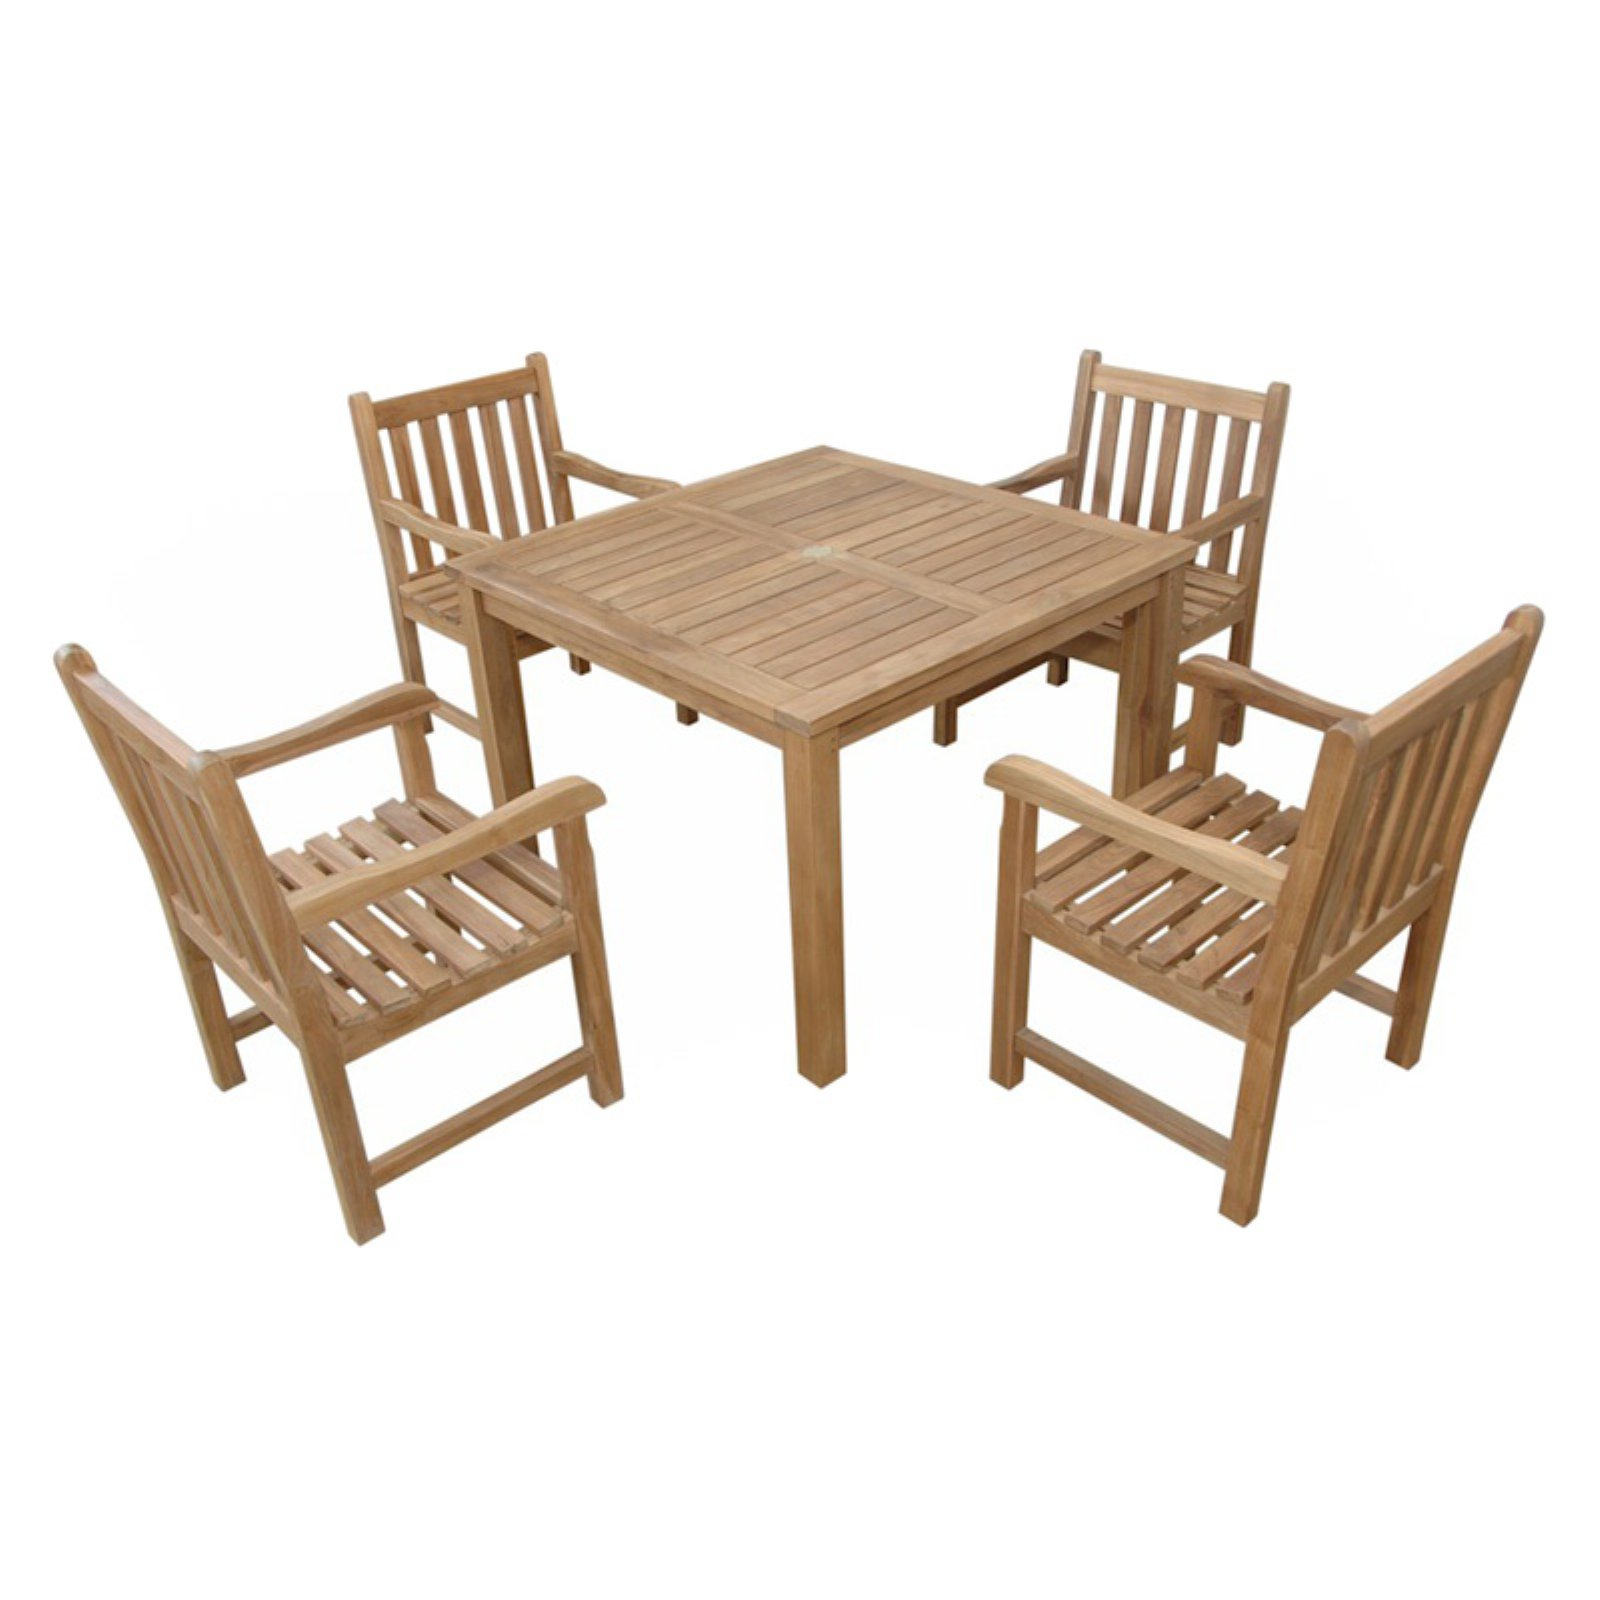 Anderson Teak Braxton Patio Dining Room Set by Anderson